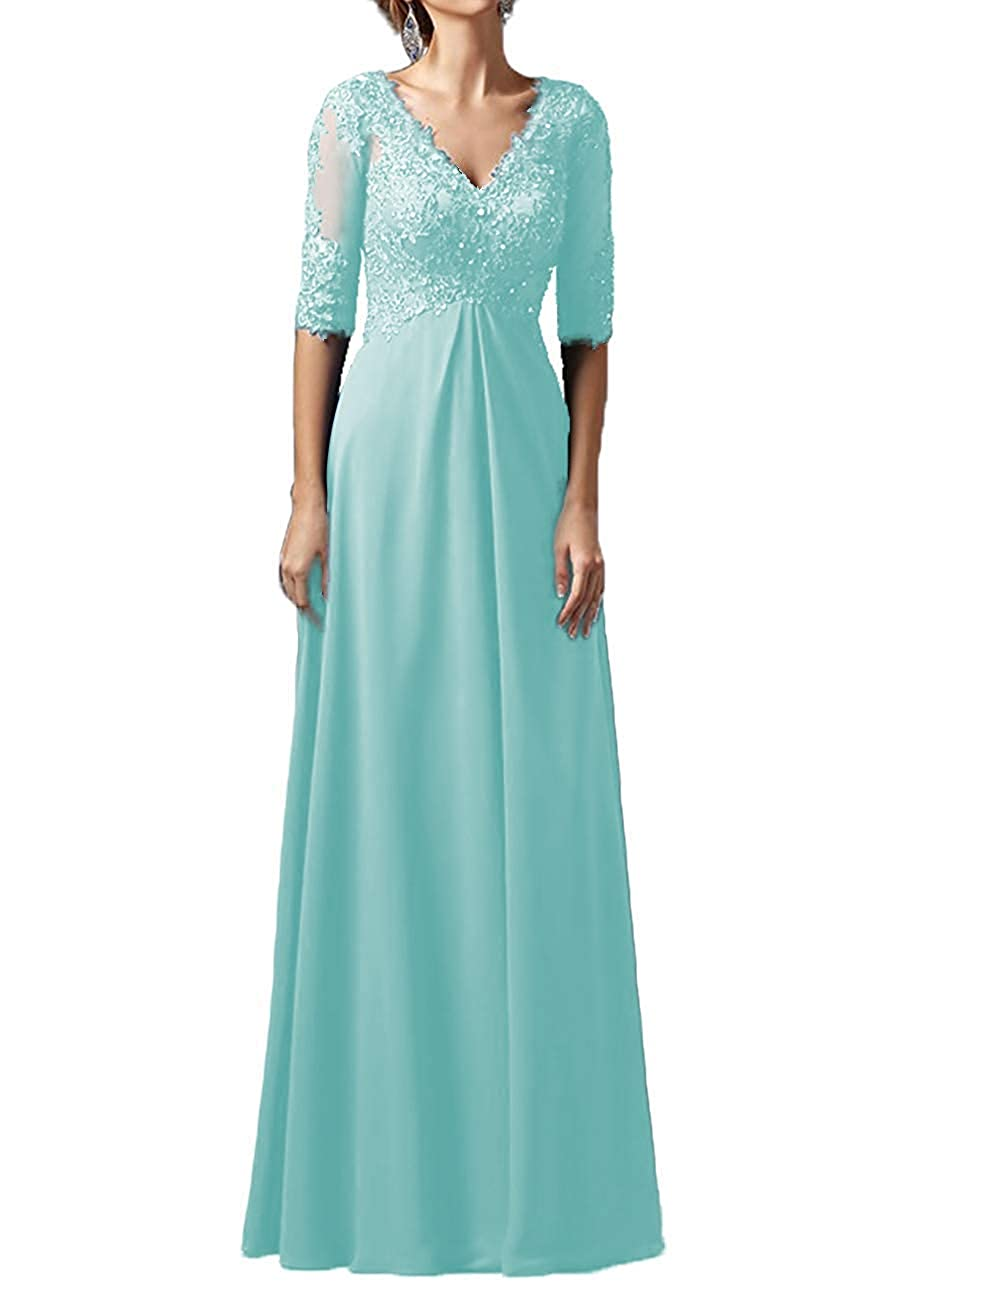 bluee Mother Dress Long Sleeves V Neck Plus Size Mother of The Bride Dress Formal Party Evening Gowns